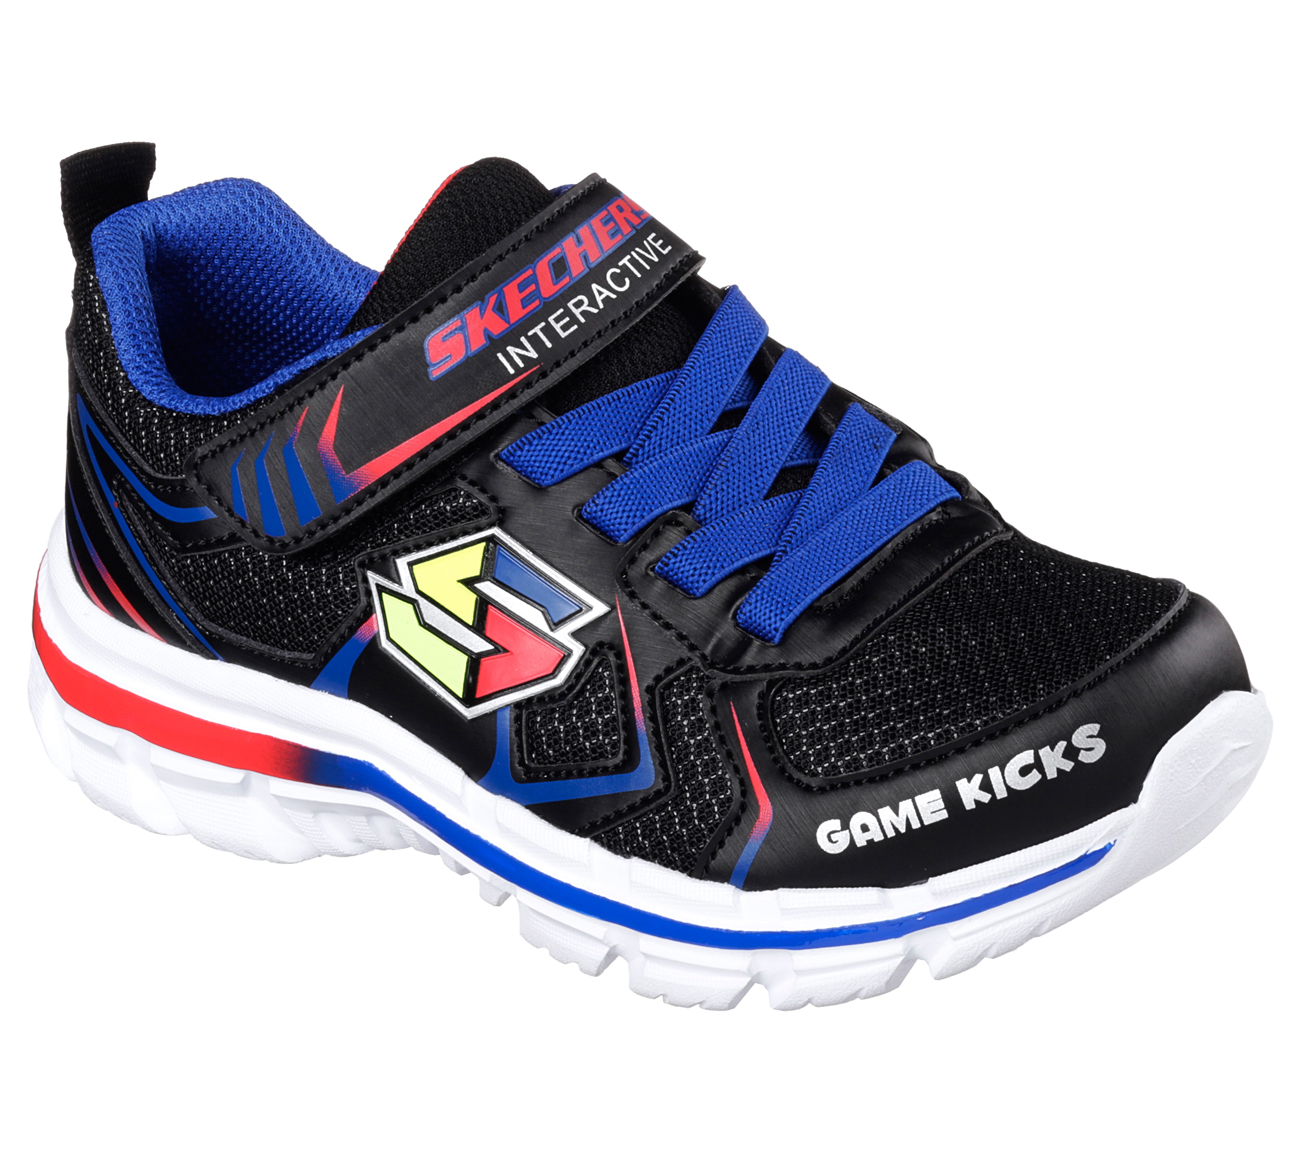 Buy SKECHERS Nitrate - Game Kicks OG Game Kicks Shoes only ...